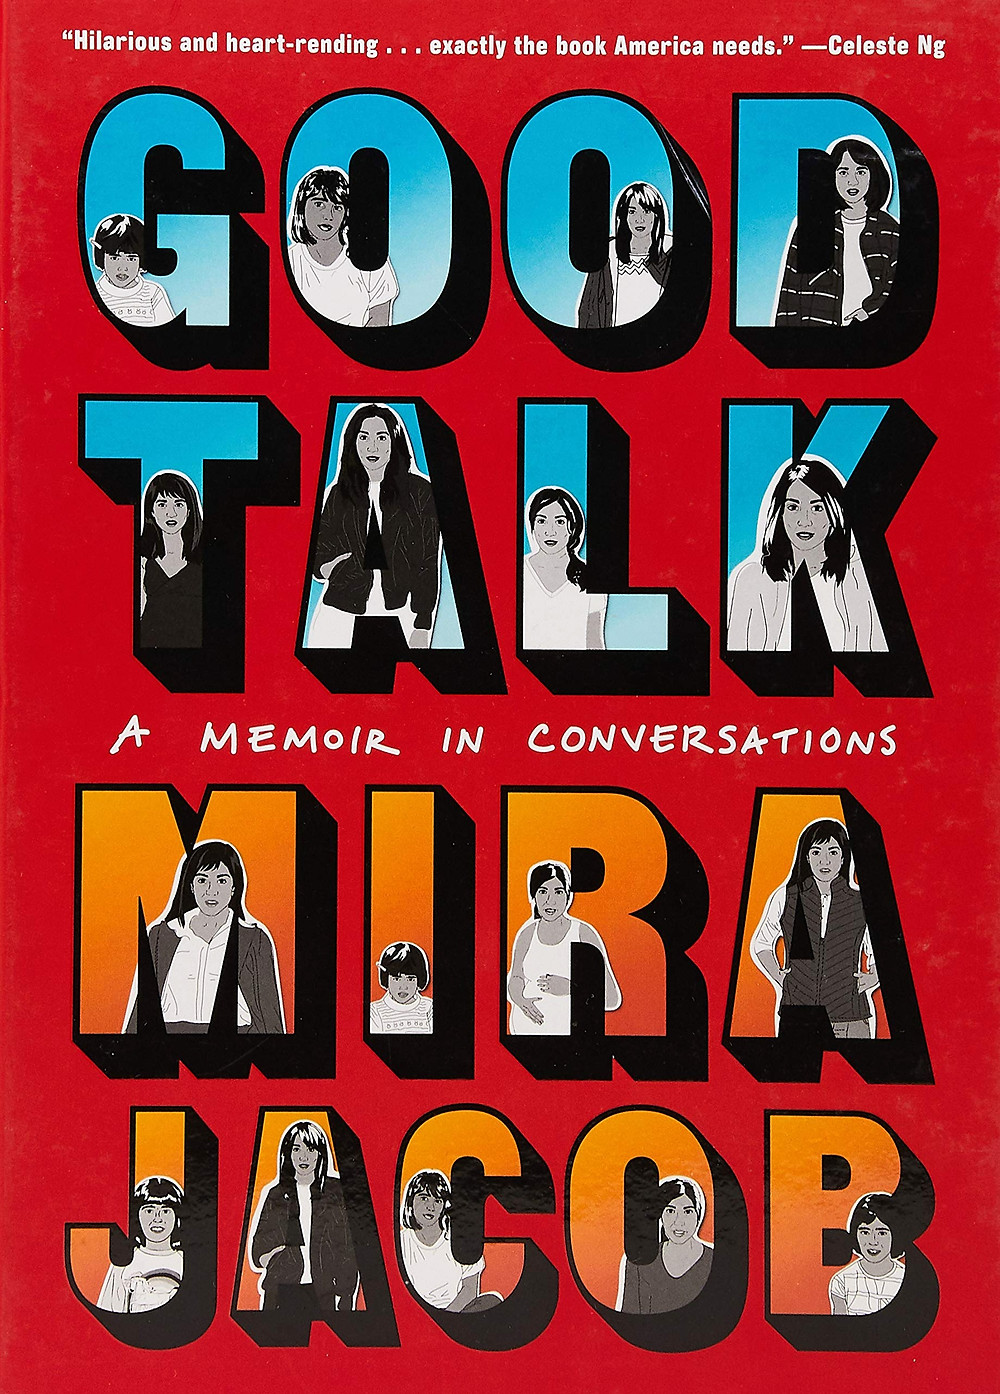 "The cover for the comic. Its background is a medium red. The full title is 'Good Talk: A memoir in Conversations'. The 'Good Talk' text is in all capital letters and has a large blue ombre font, where it transitions from a medium blue at the top of each letter to a lighter blue. The letters have a black outline. In each letter is an image of Mira the character from the comic at different stages in her life/in the story. Above the 'Good Talk' text, in small white font, is a blurb quote by Celeste Ng. It reads, '""Hilarious and heart-rending...exactly the book America needs."" - Celeste Ng'. Beneath the 'Good Talk' text in a larger white font that is designed to look handwritten is 'A Memoir in Conversations'. Beneath this text is the author's name 'Mira Jacob.' The font for 'Mira Jacob' is just like that of 'Good Talk', with an ombre effect, capitalized letters, black outline, and images of character Mira in each letter, but the color transitions from a medium to dark orange."